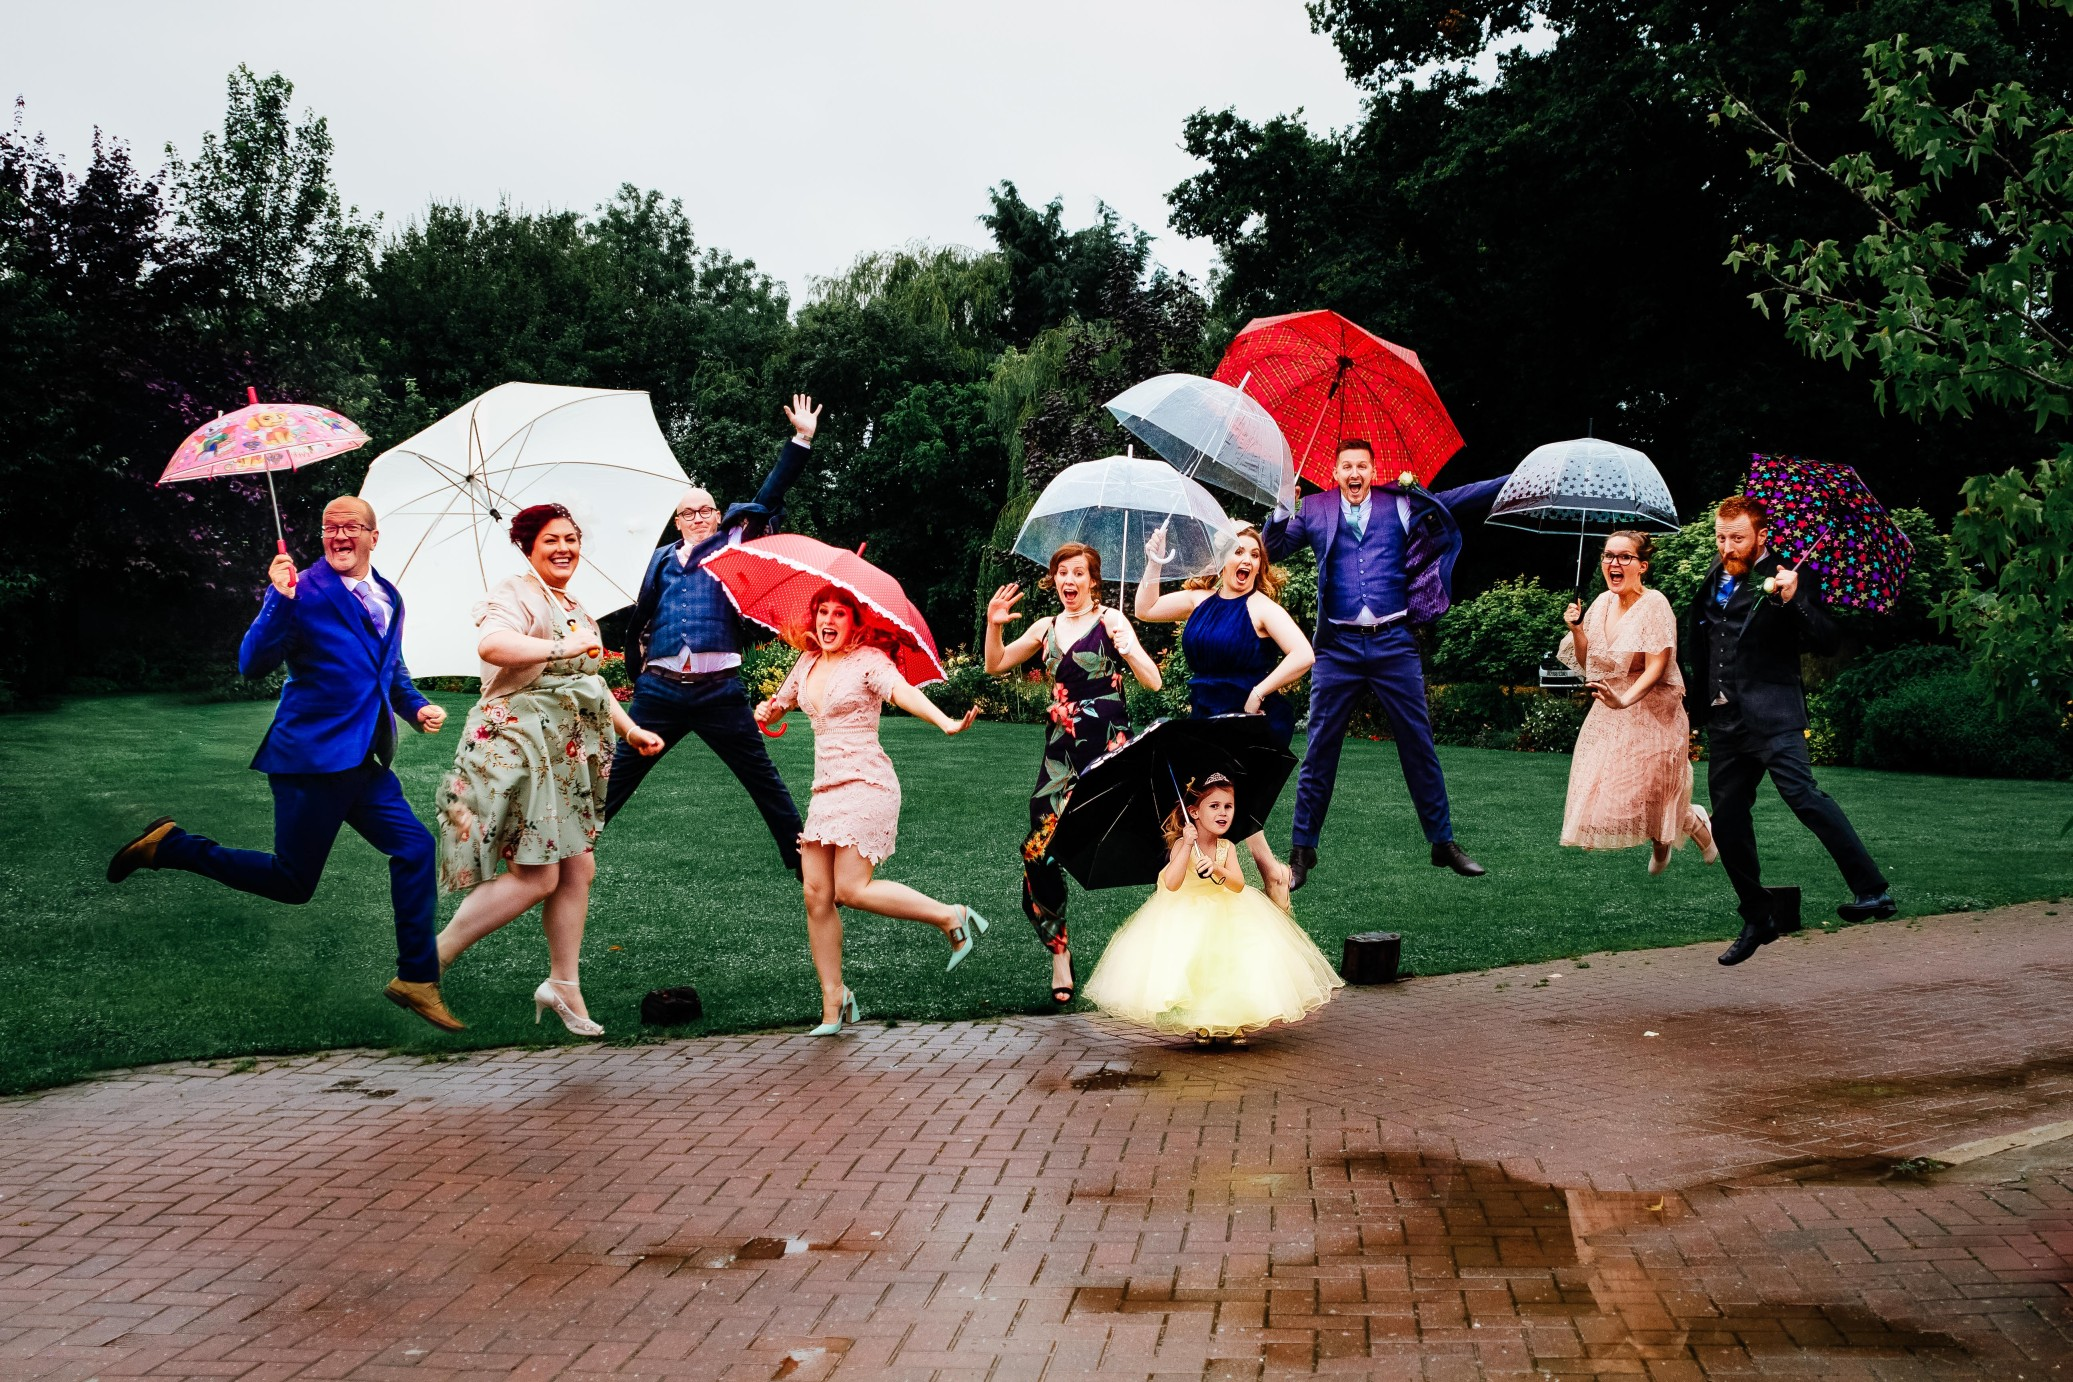 rainy wedding - rain wedding advice - fun wedding planning - wedding planning blog - rain wedding photos with umbrellas